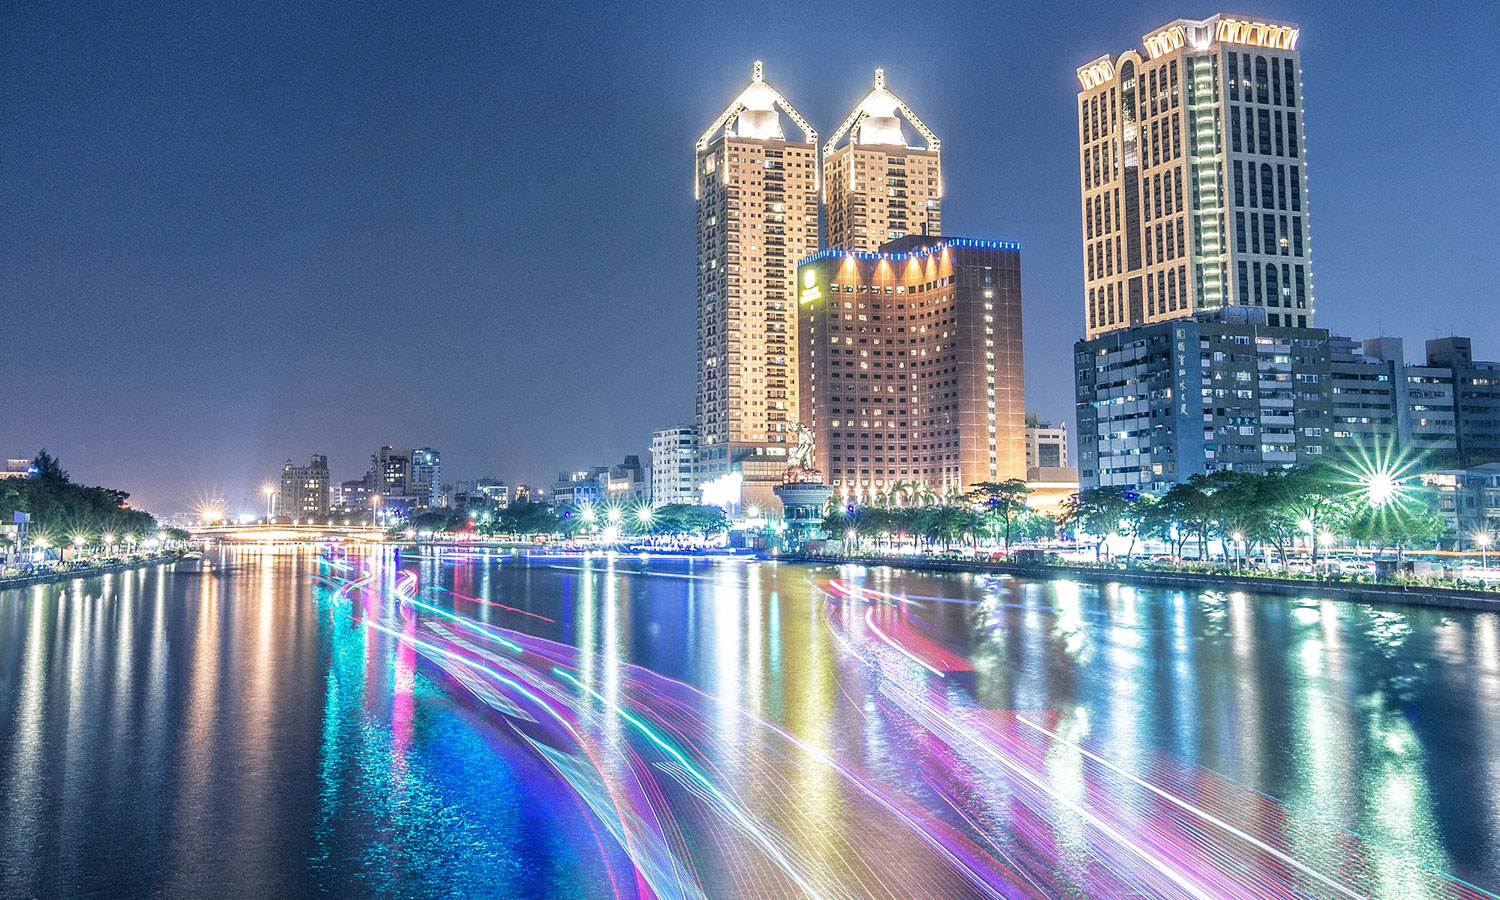 Night view of Love River. (source: Tourism Bureau of Kaohsiung City Government)